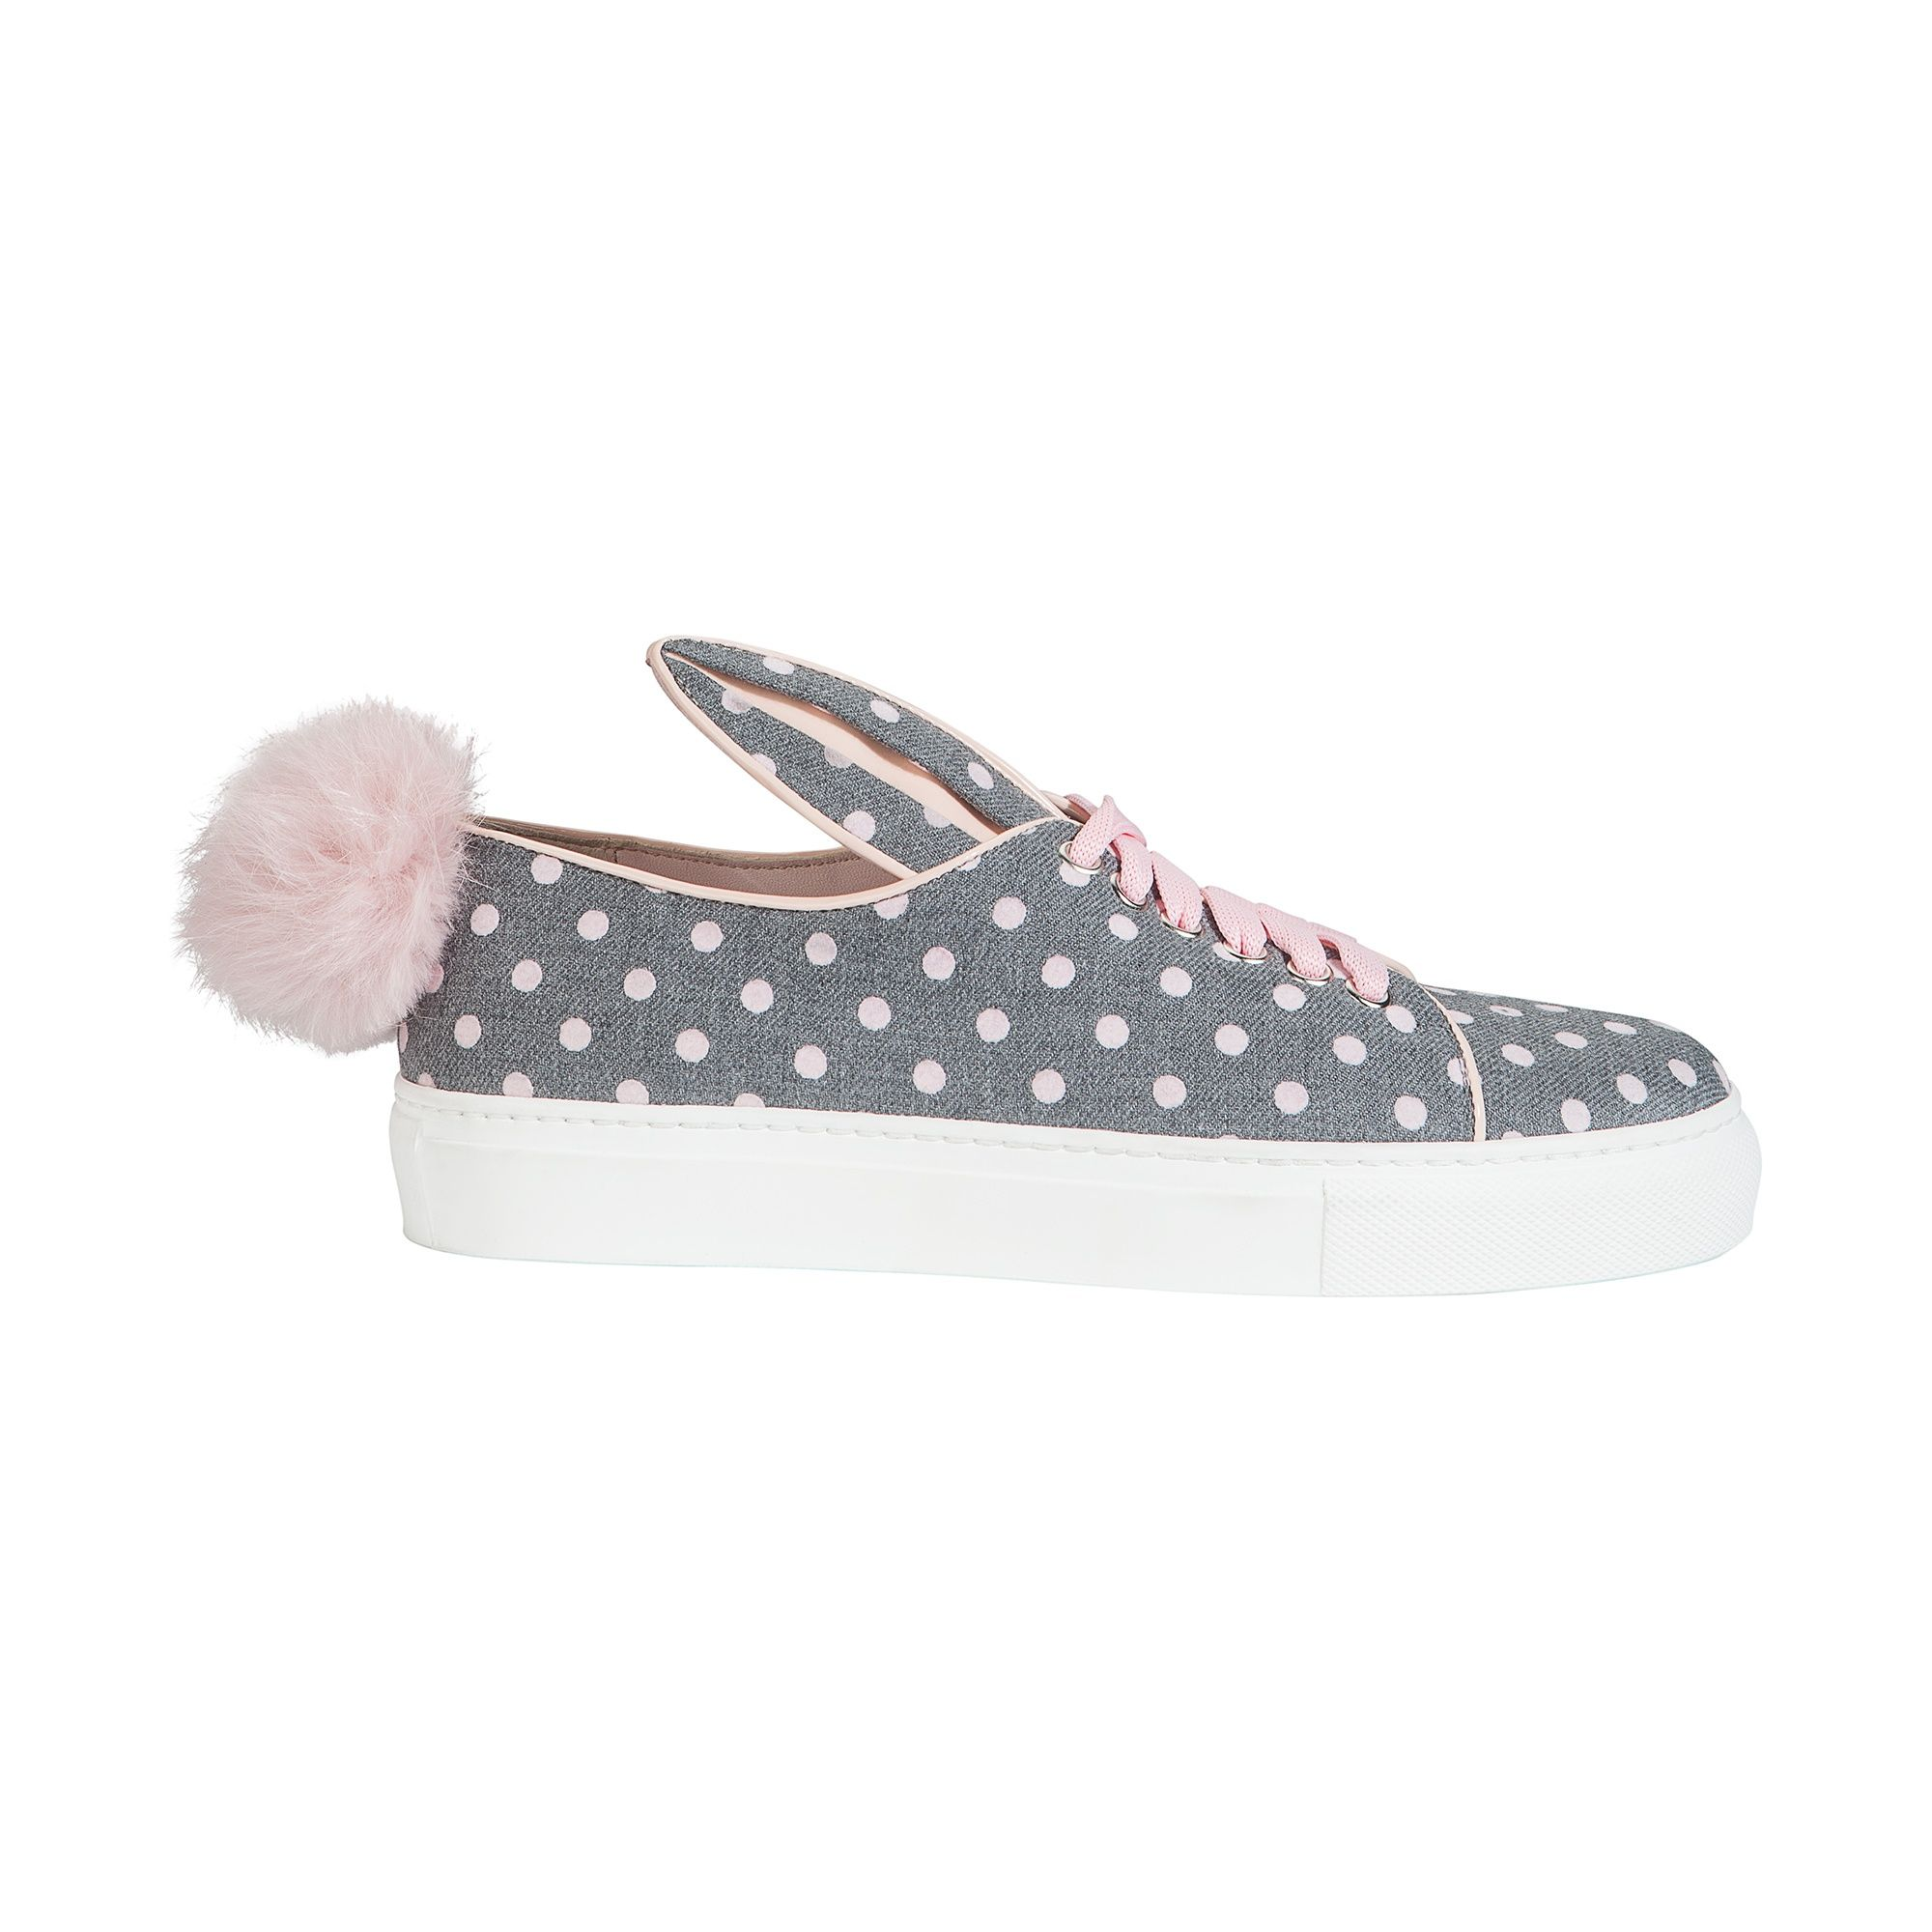 TAIL SNEAKS GREY-PINK TEXTILE